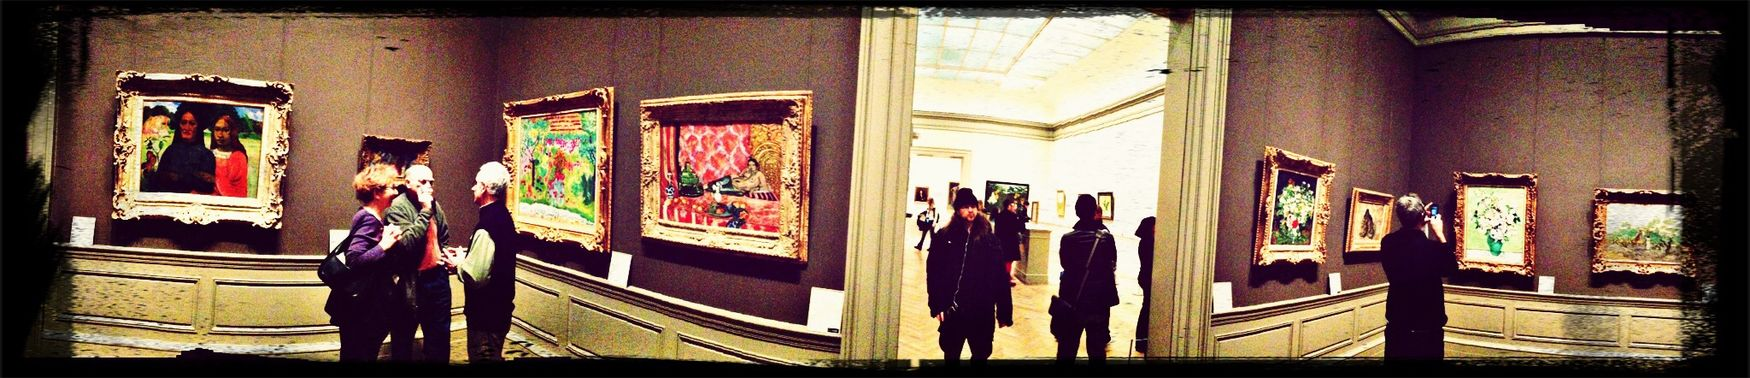 People watching people watching art at the met with a filter and magic wand Lovelovelove Discovering Great Works People Watching Eye4photography